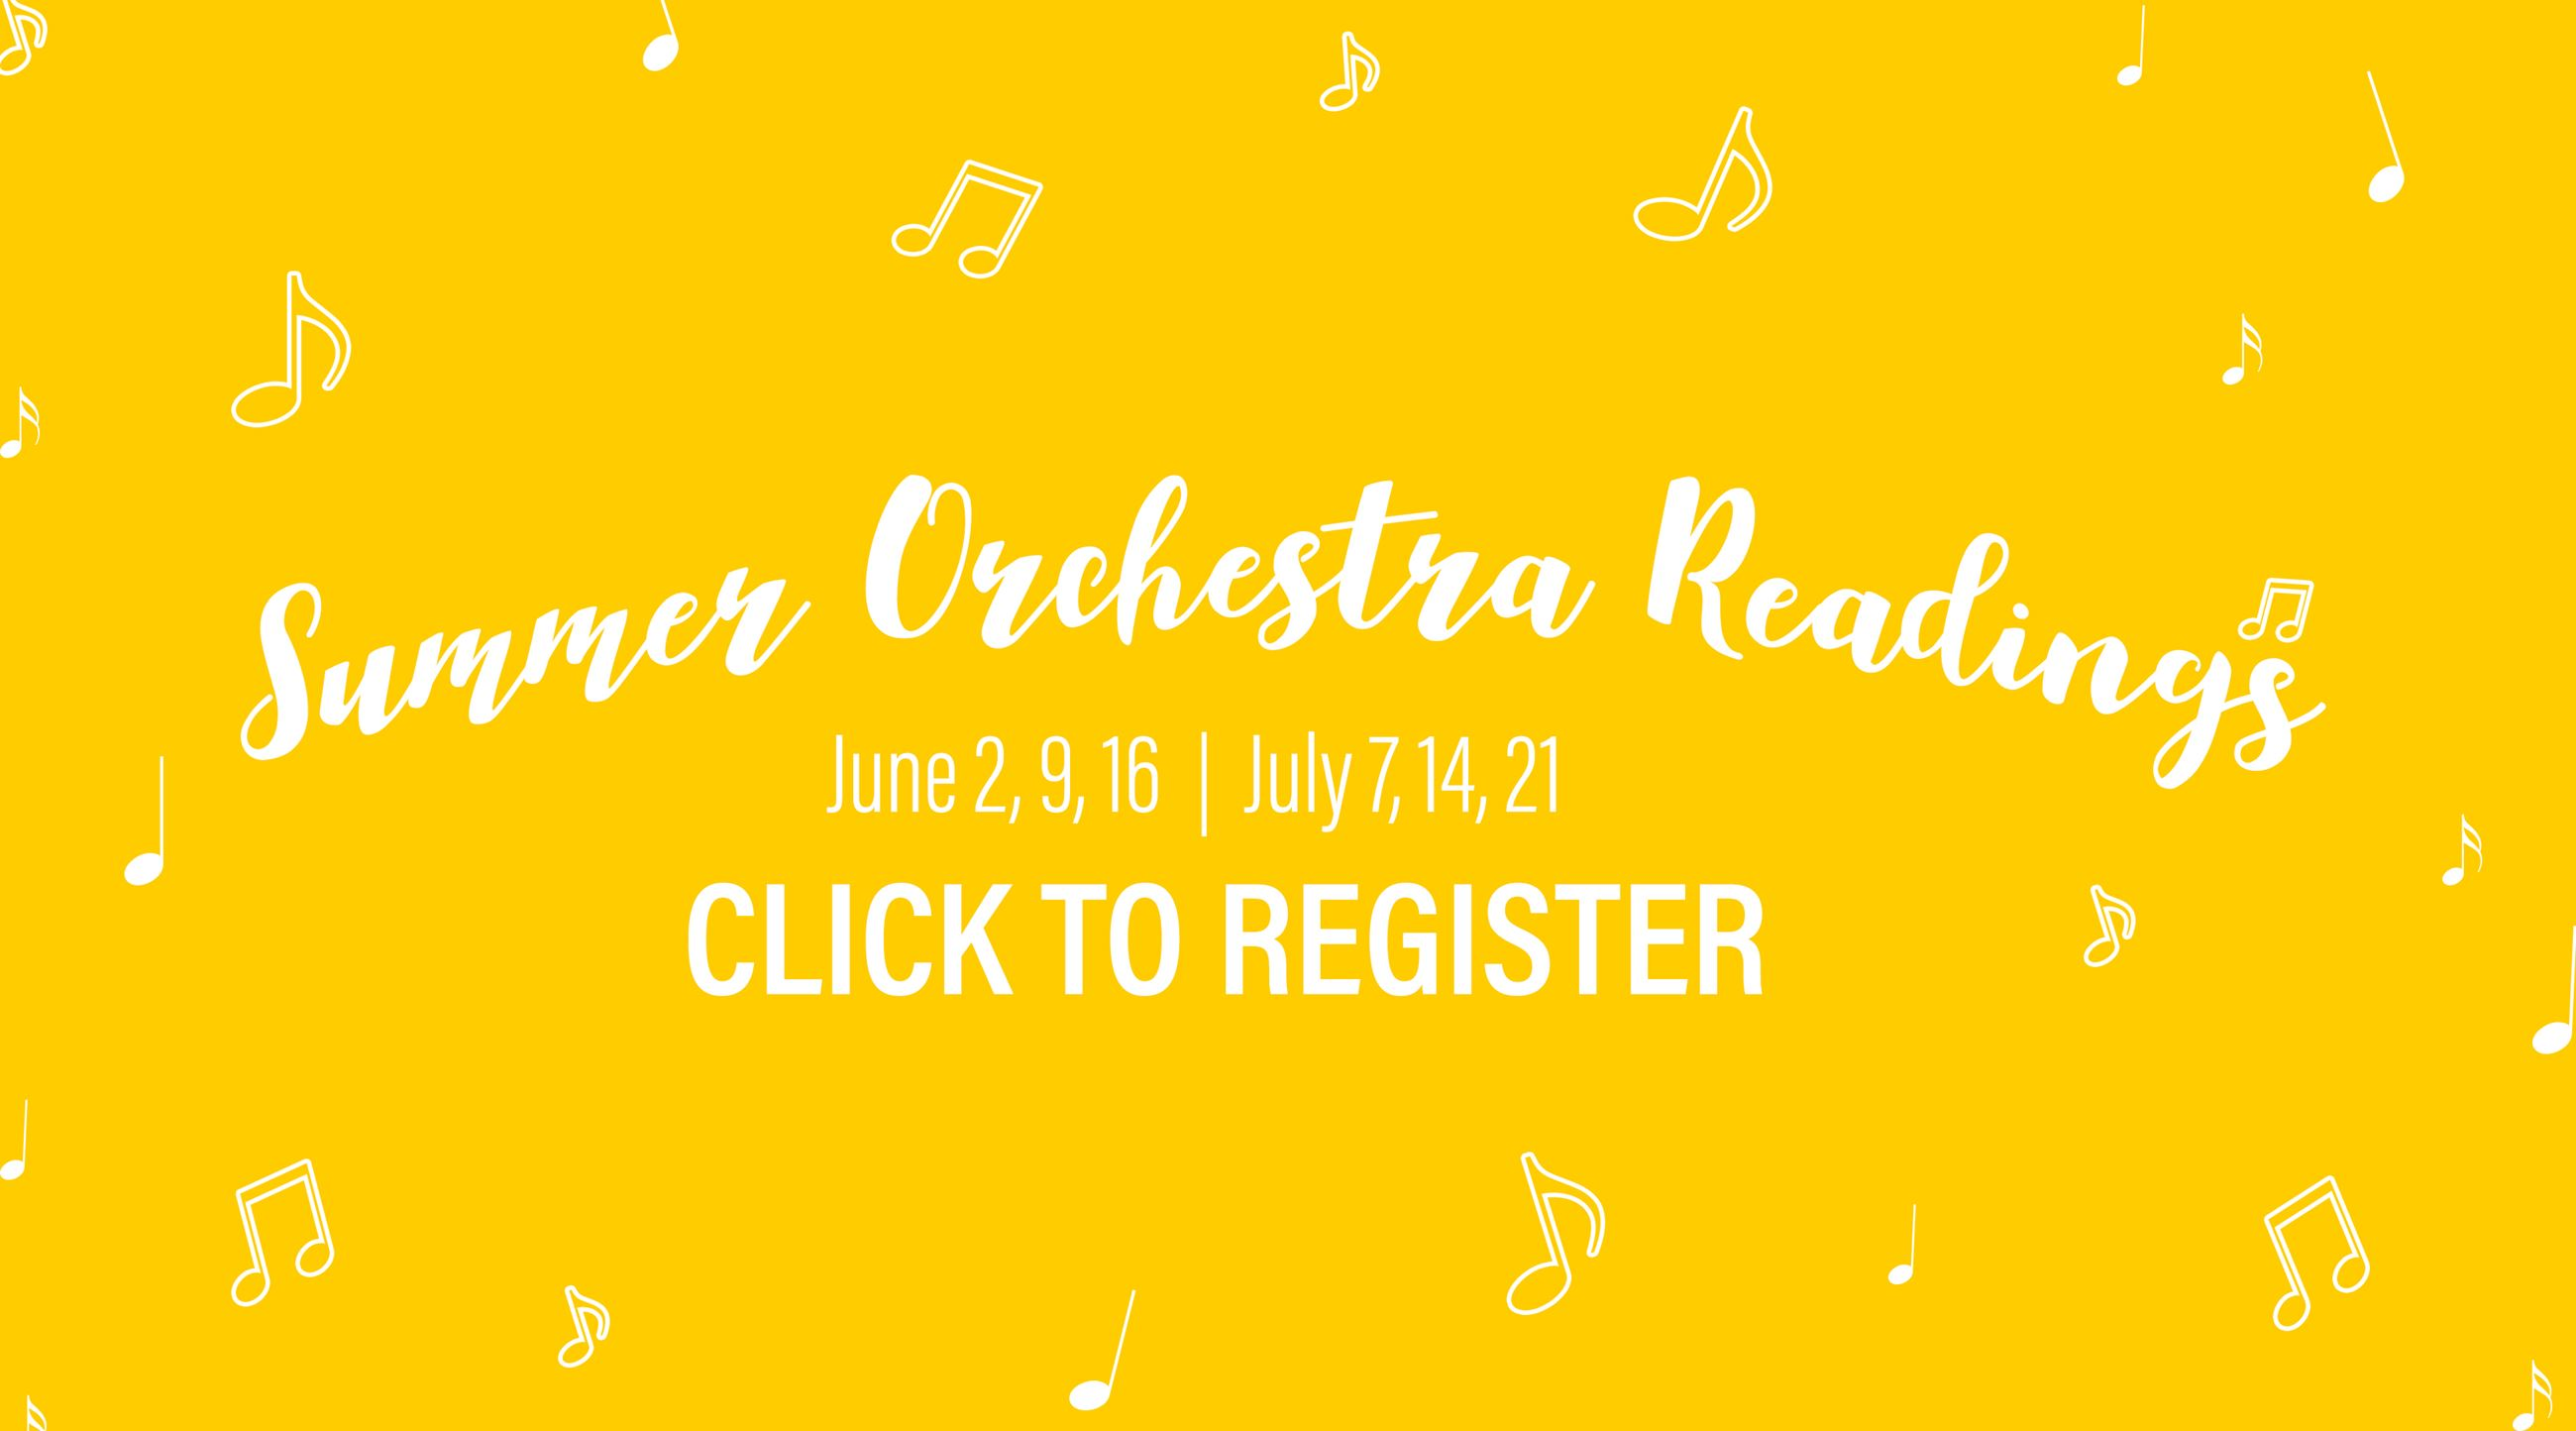 Summer Orchestra Readings, June 2, 9, 16 and July 7, 14, 21 from 9 a.m. to Noon